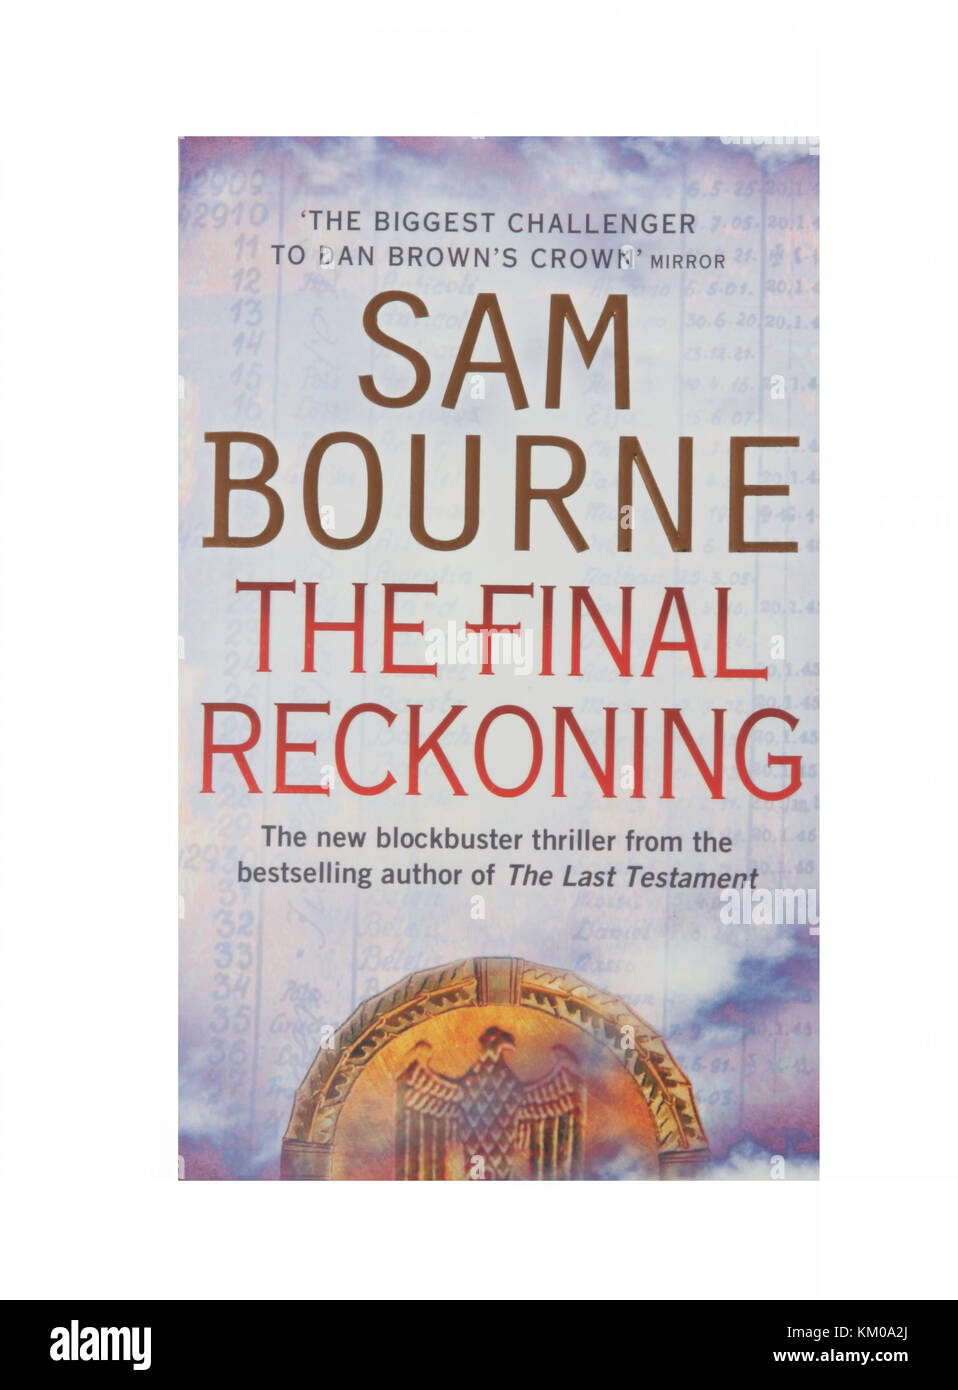 The book, The Final Reckoning by Sam Bourne - Stock Image